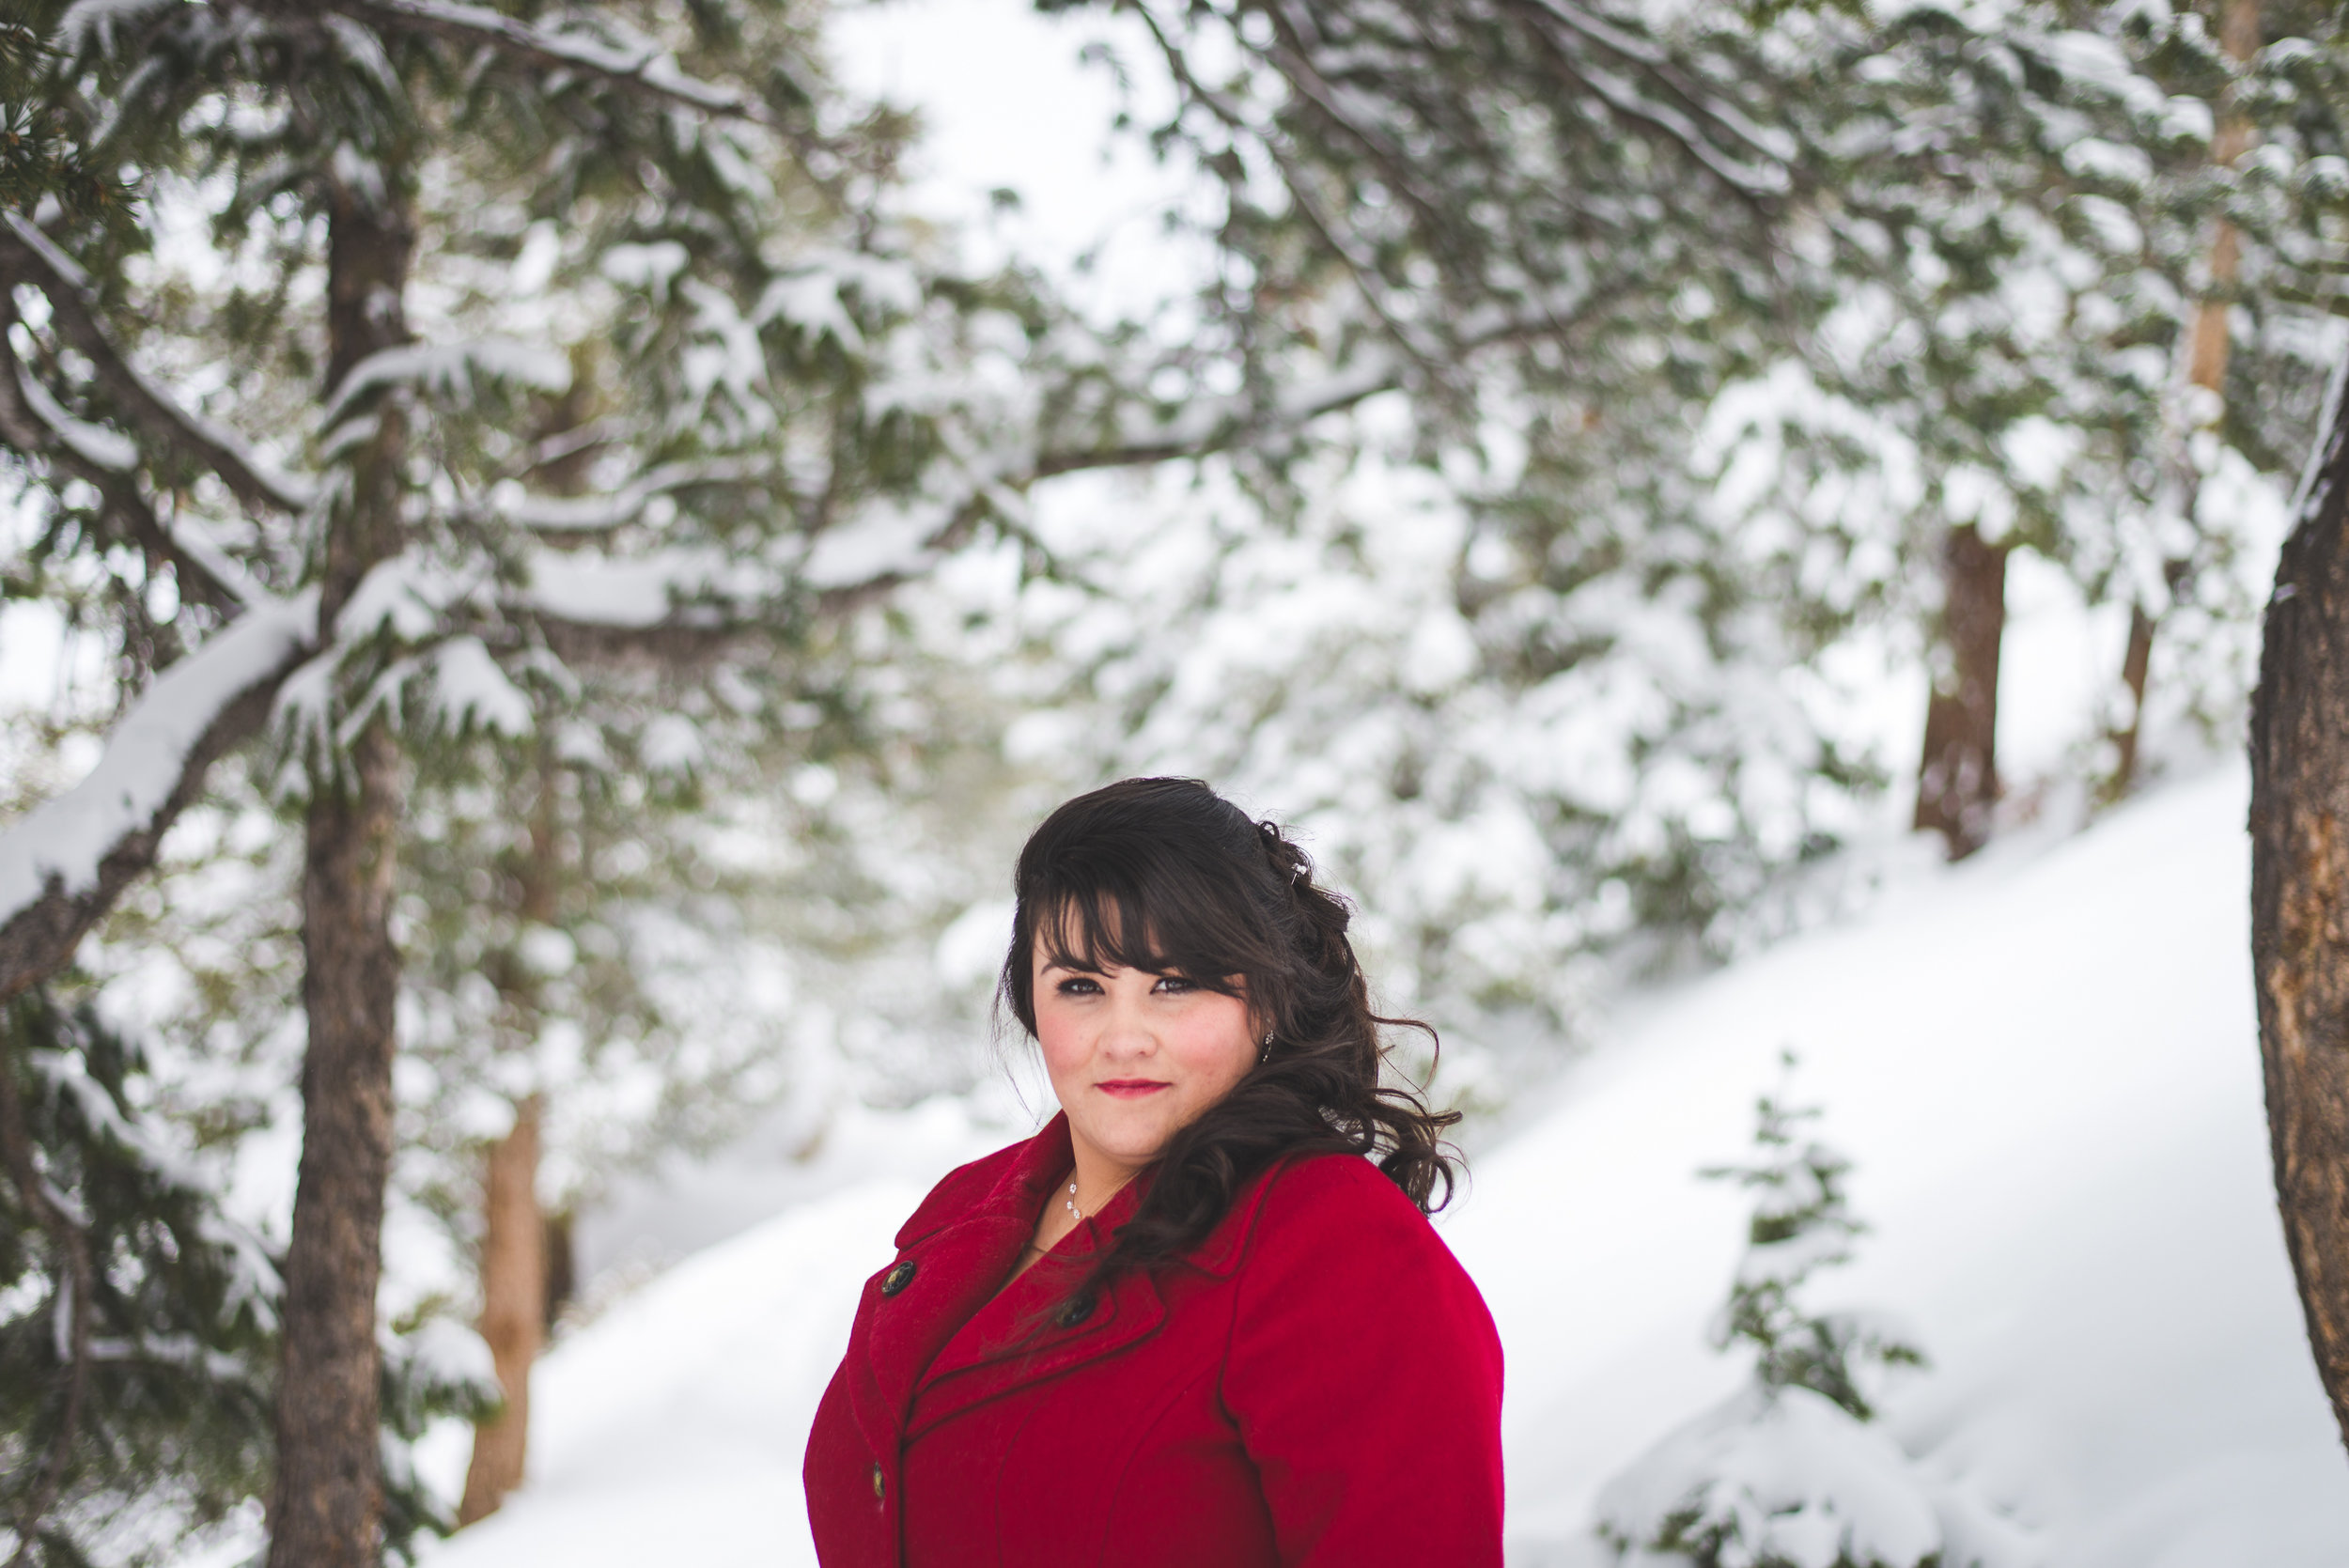 this beautiful Colorado bride chose a bold, red coat to wear over her wedding dress - a great way to add pop and color to the snowy landscape!